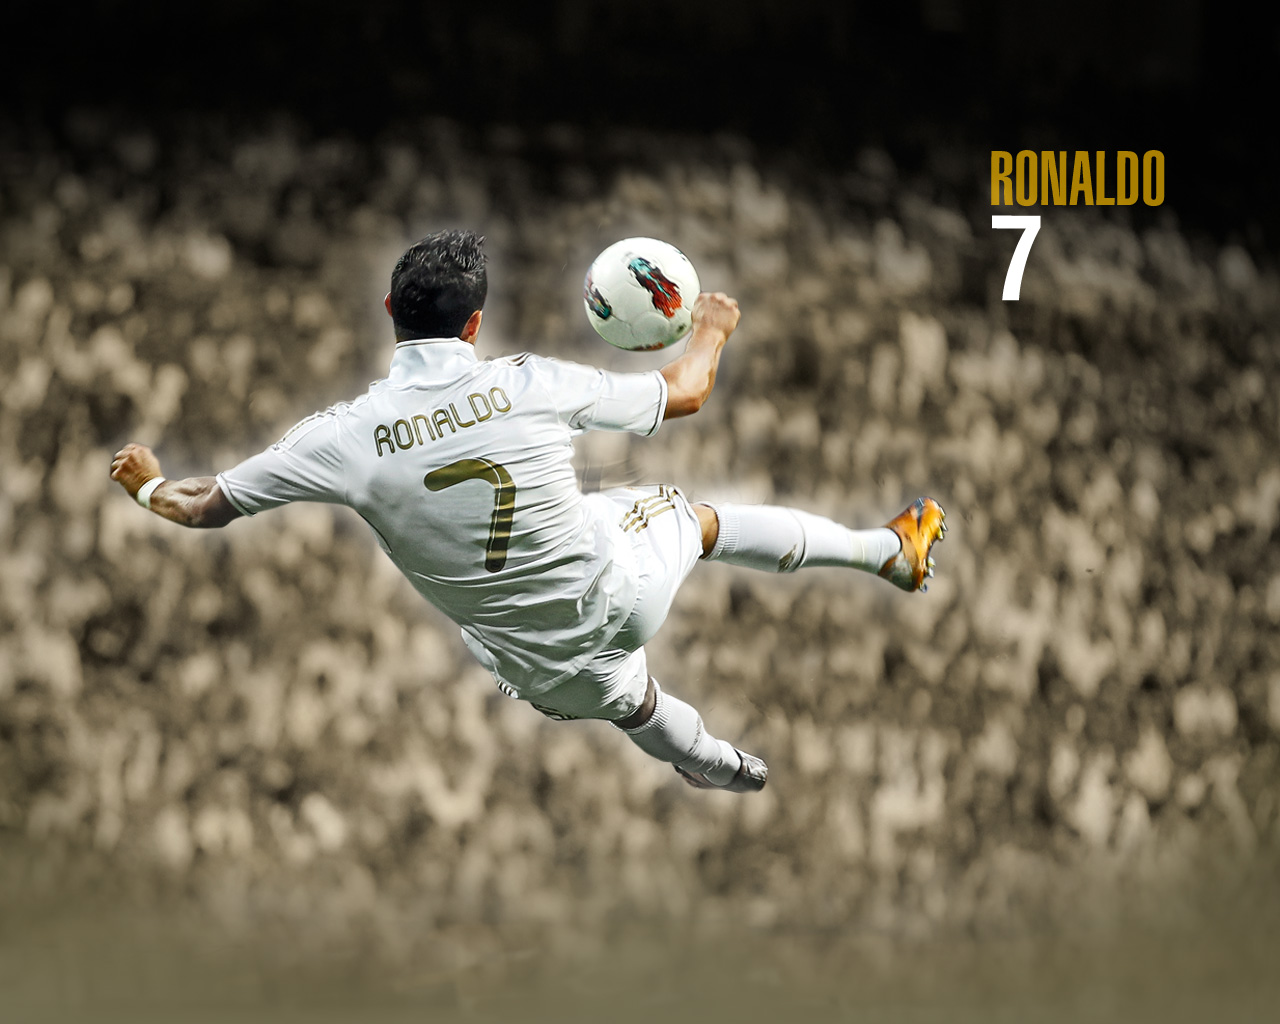 Hd wallpapers free download cristiano ronaldo 2013 hd wallpapers cristiano ronaldo 2013 hd wallpapers voltagebd